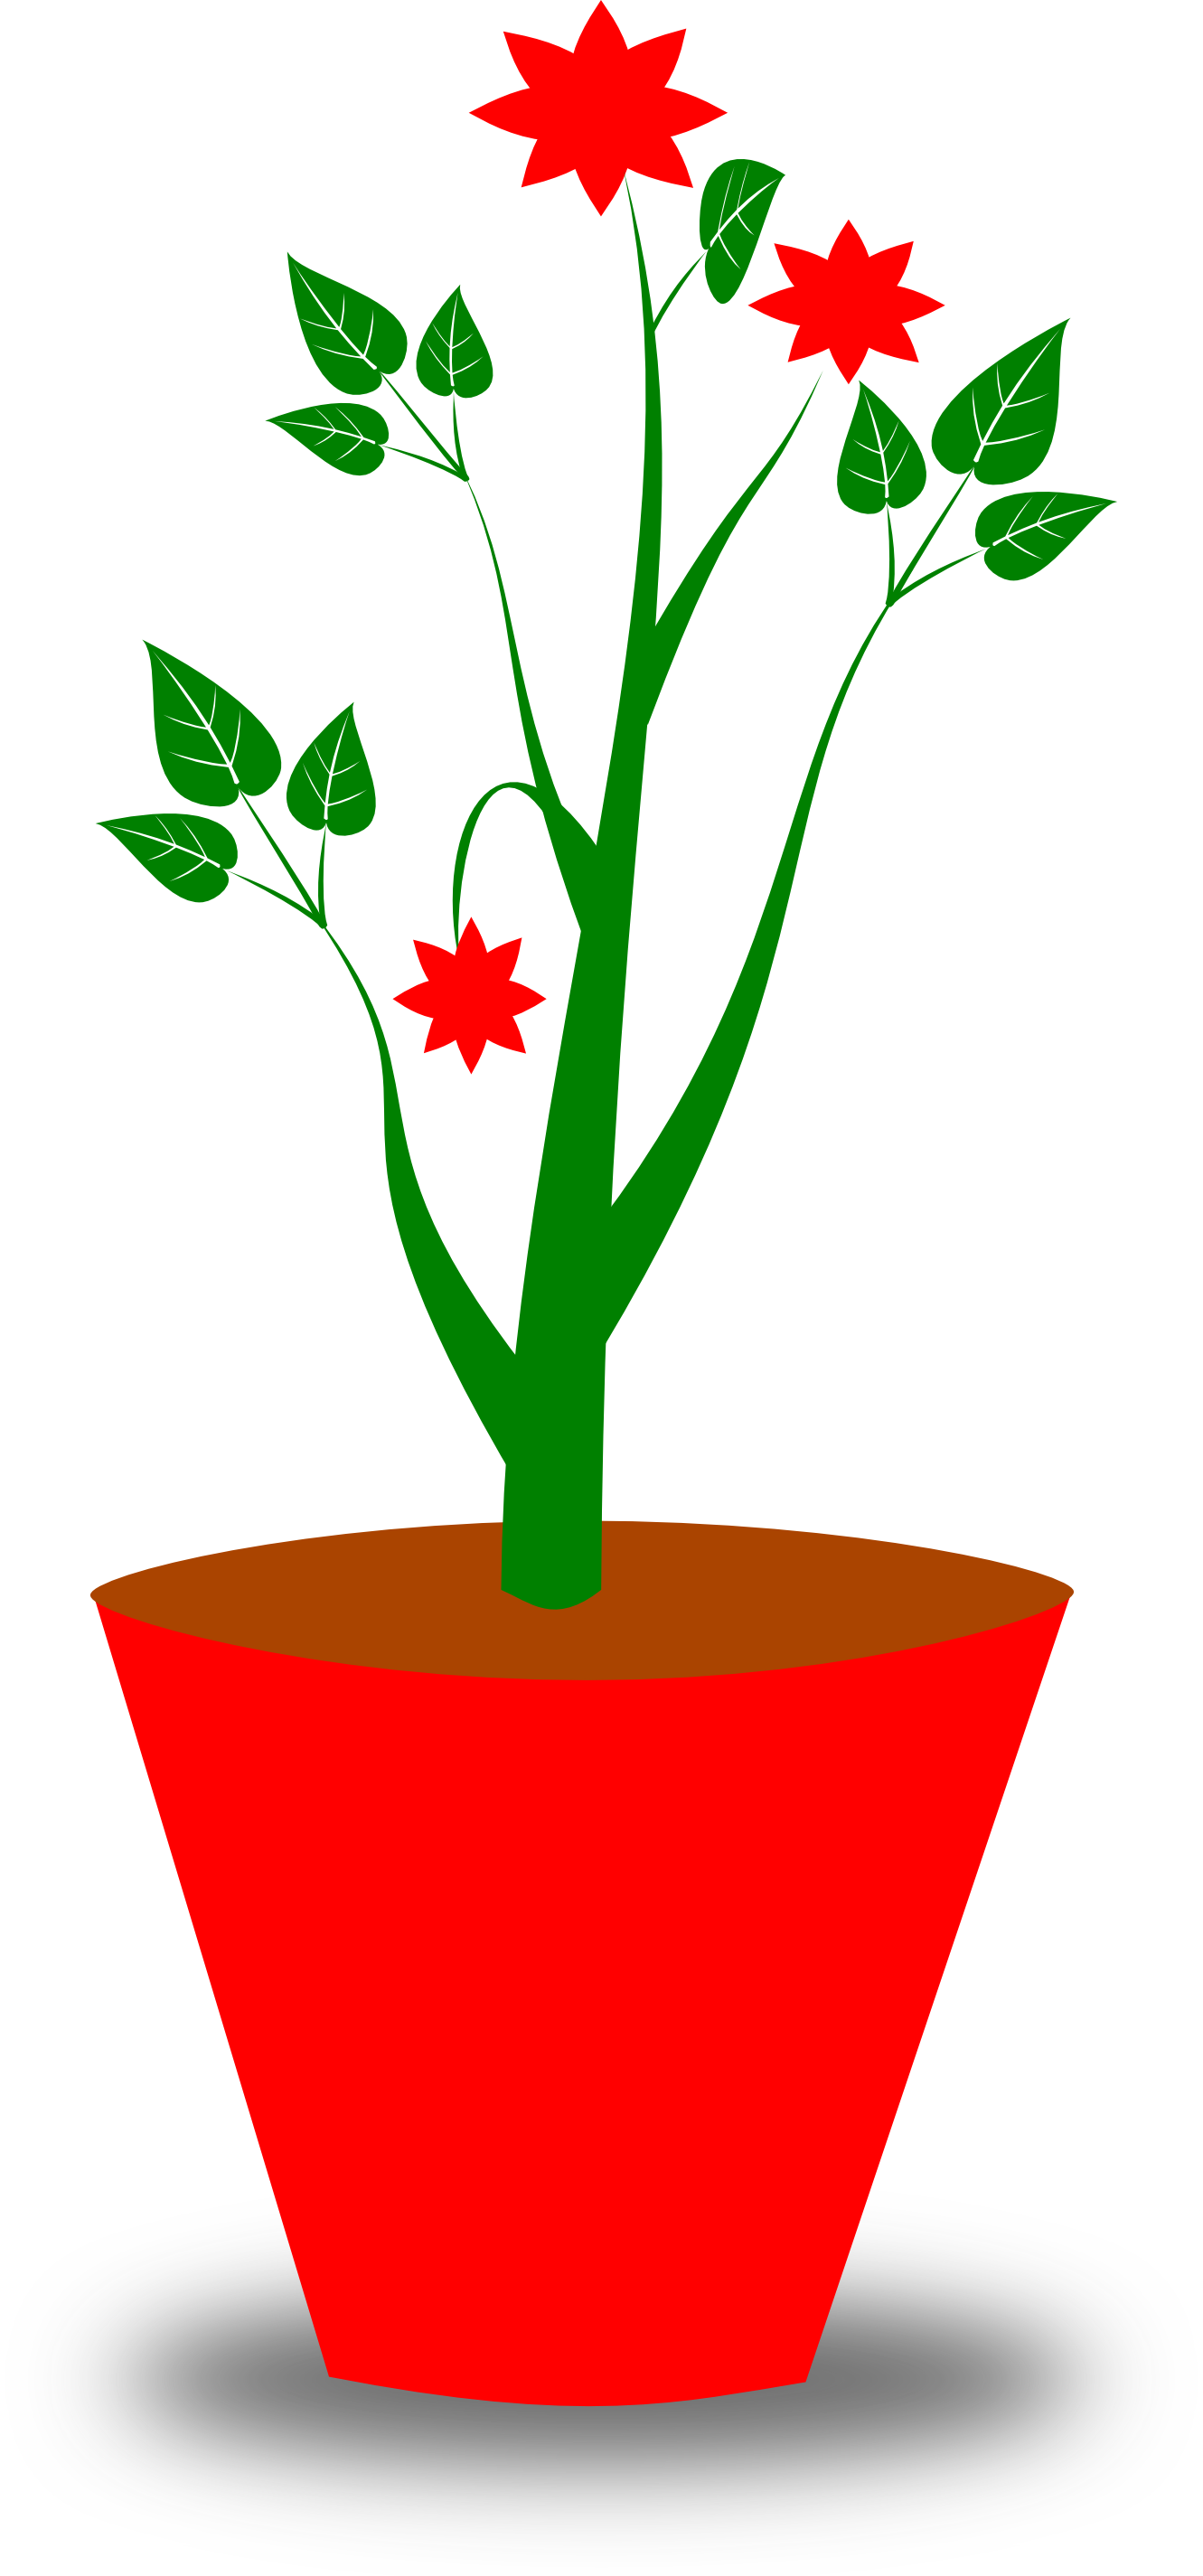 Flower pot with stems clipart black and white svg royalty free stock Free Flower Pot Clipart, Download Free Clip Art, Free Clip Art on ... svg royalty free stock